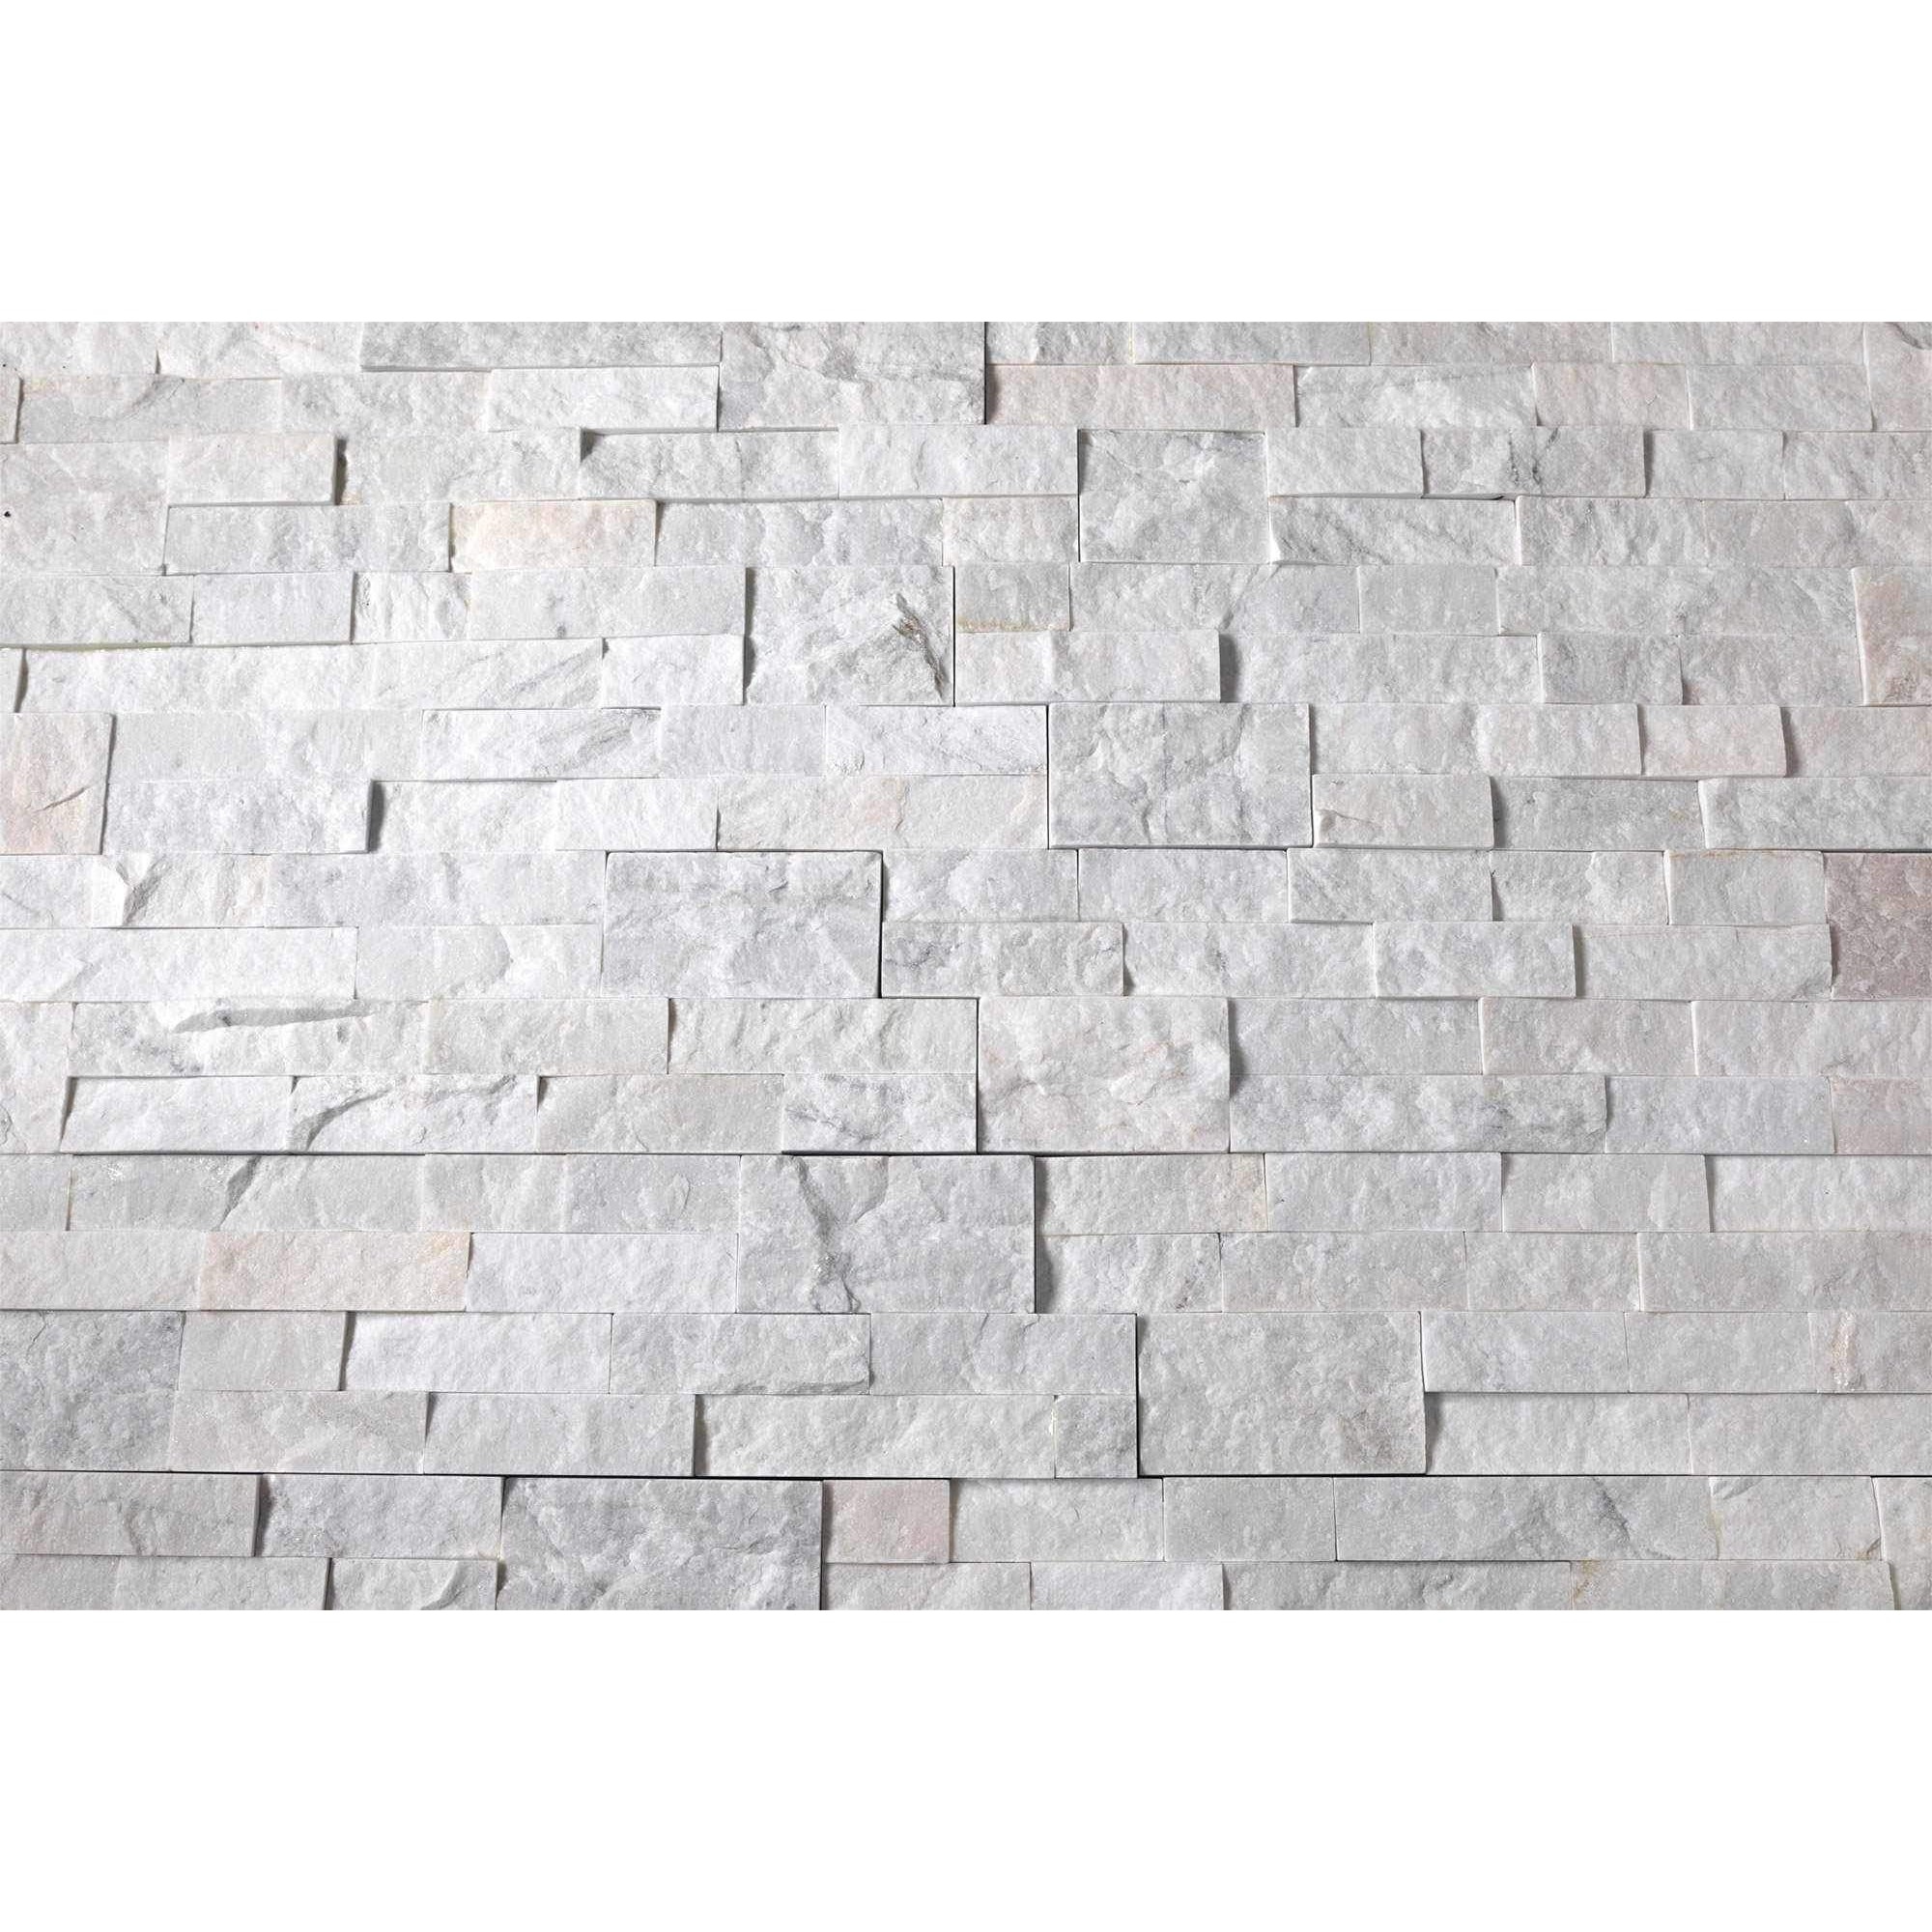 Natural Stacked Stone Feature Wall Cladding Panels - Milky White-Wall Cladding-Stone and Rock